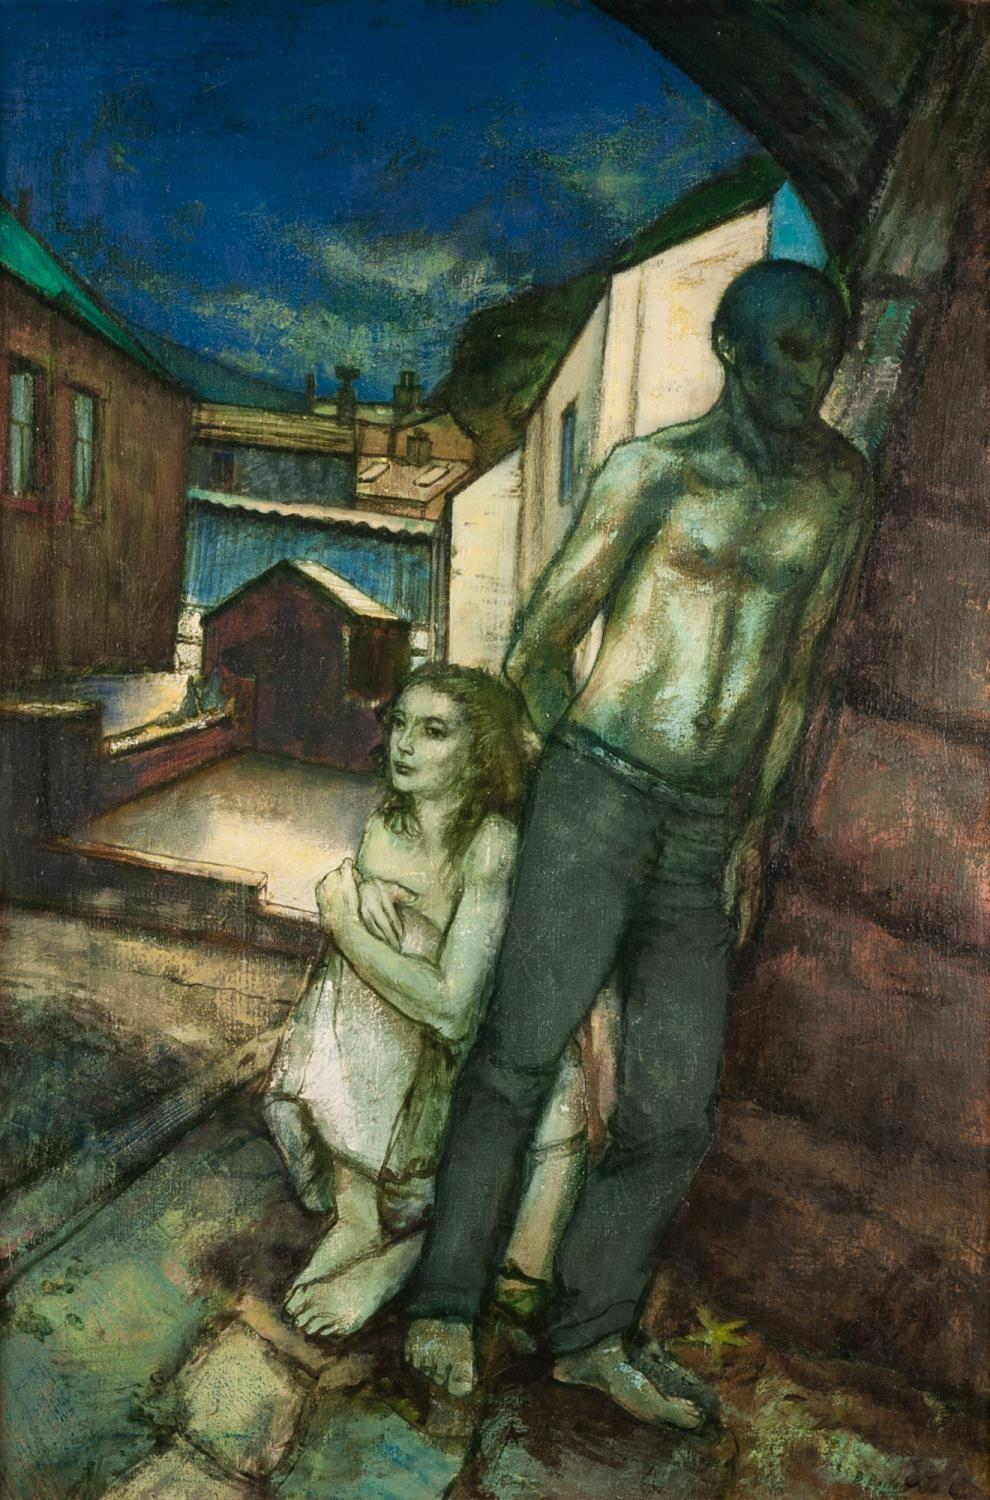 Lot 7 - BOHUSLAV BARLOW (b. 1947) OIL ON CANVAS ?The Blue Arch? two figures beneath an archway Signed, title